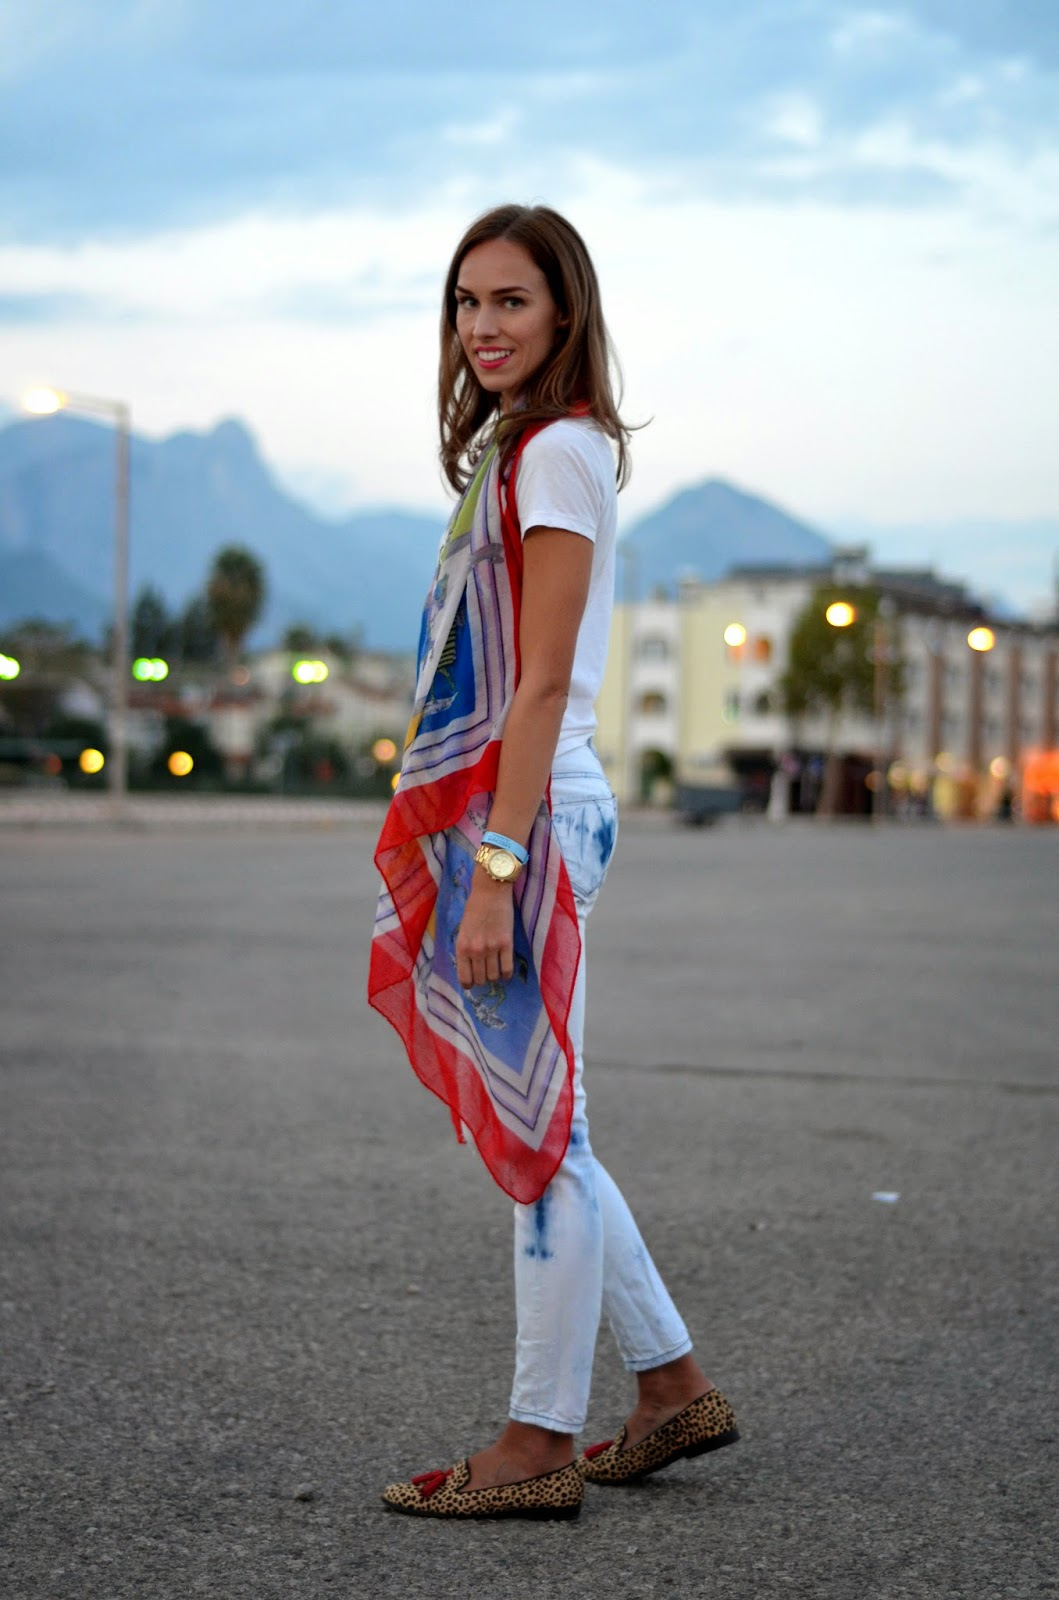 red-big-scarf-outfit-jeans-flats-kemer kristjaana mere